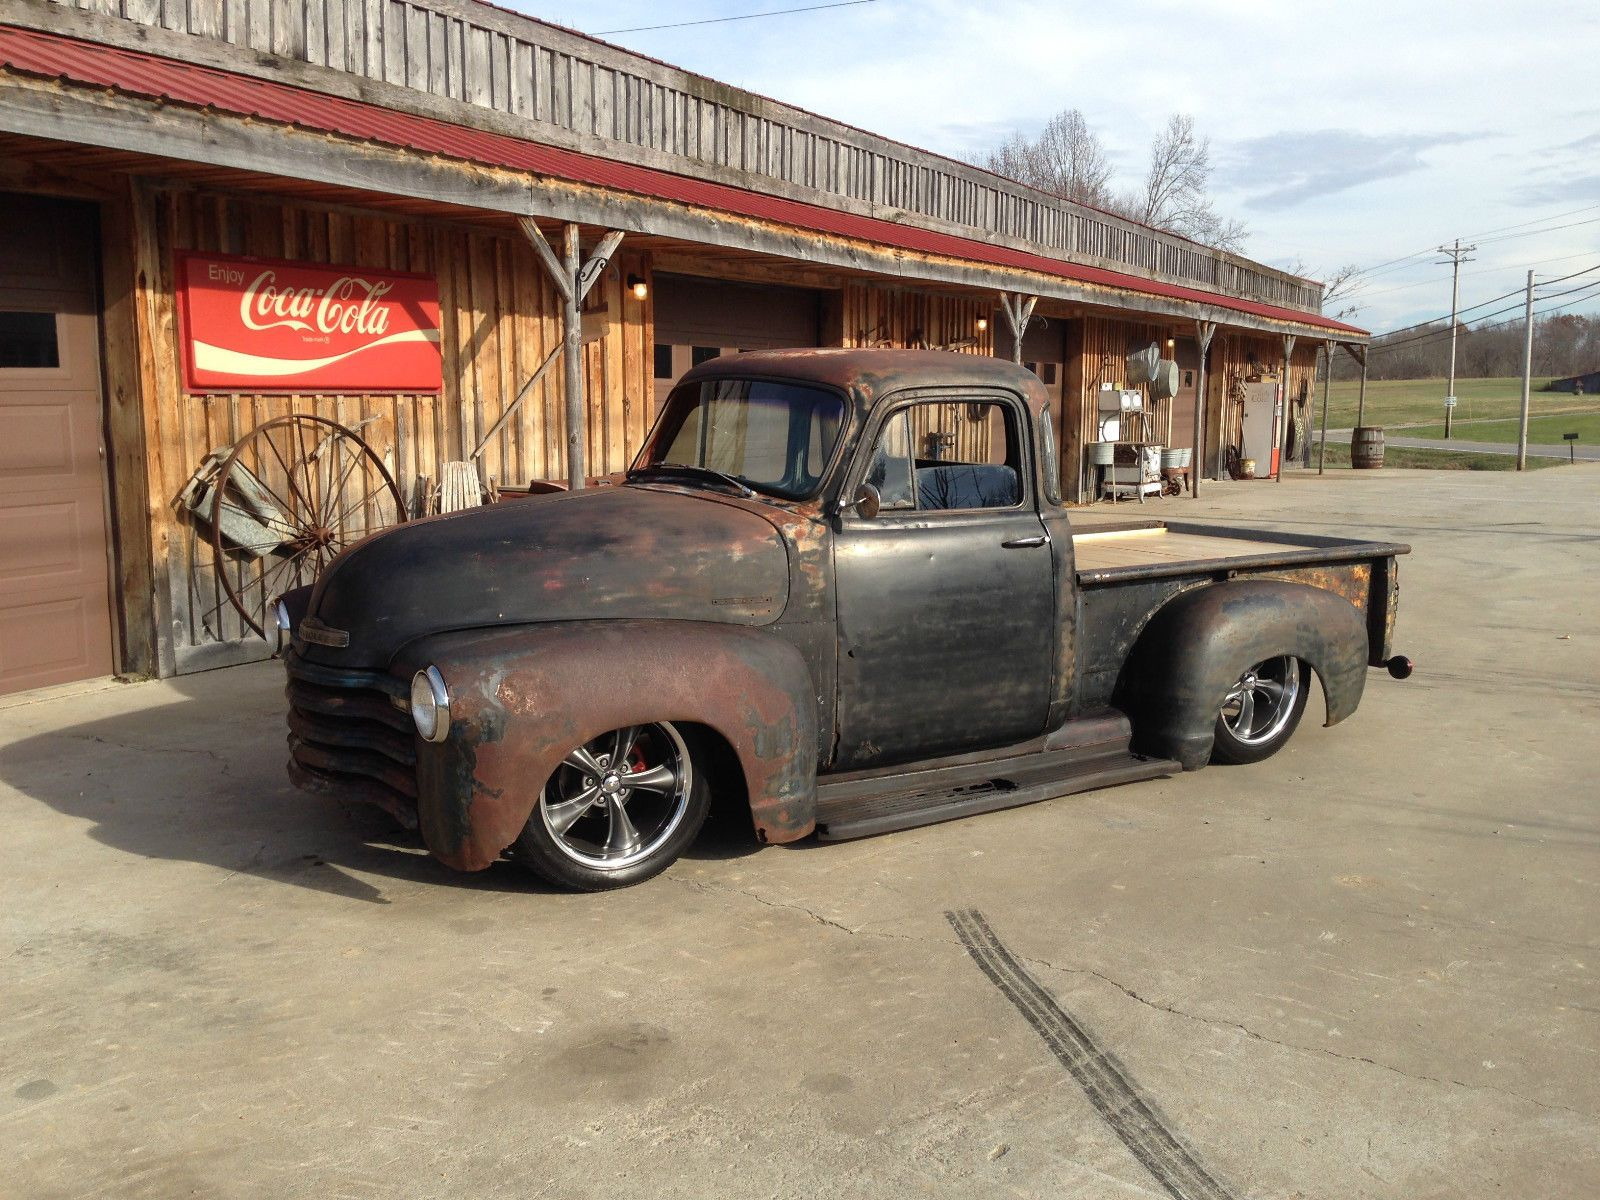 Pin By Rikky Rosario On Slammed Chevy Trucks 1952 Chevy Truck Chevy Pickup Trucks 54 Chevy Truck